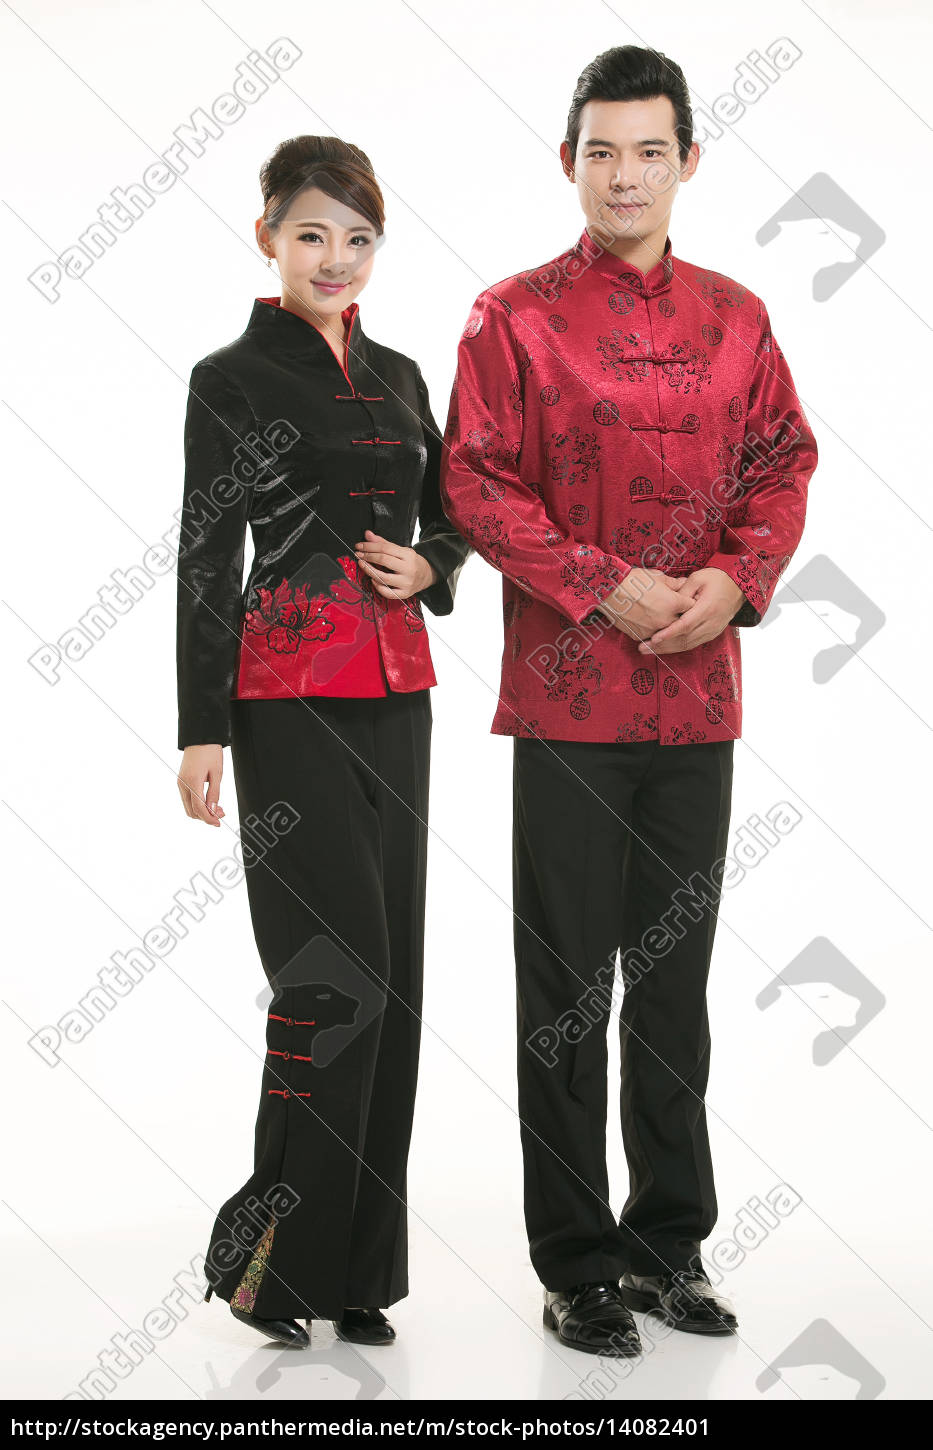 wearing, chinese, clothing, waiter, in, front - 14082401